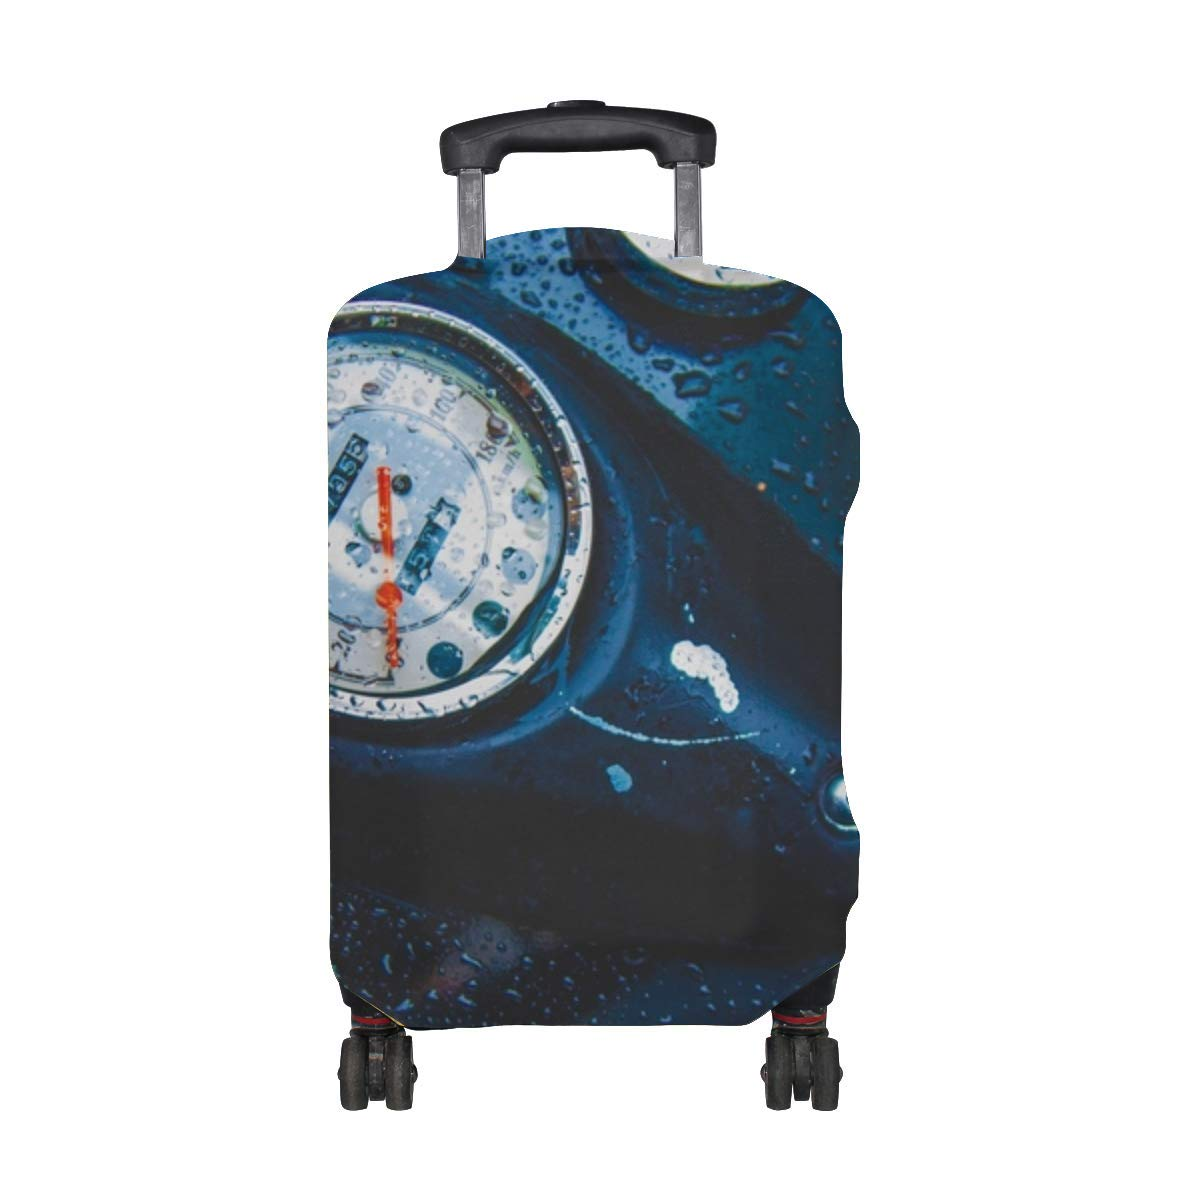 Tank Motorcycle Drops Speedometer Pattern Print Travel Luggage Protector Baggage Suitcase Cover Fits 18-21 Inch Luggage